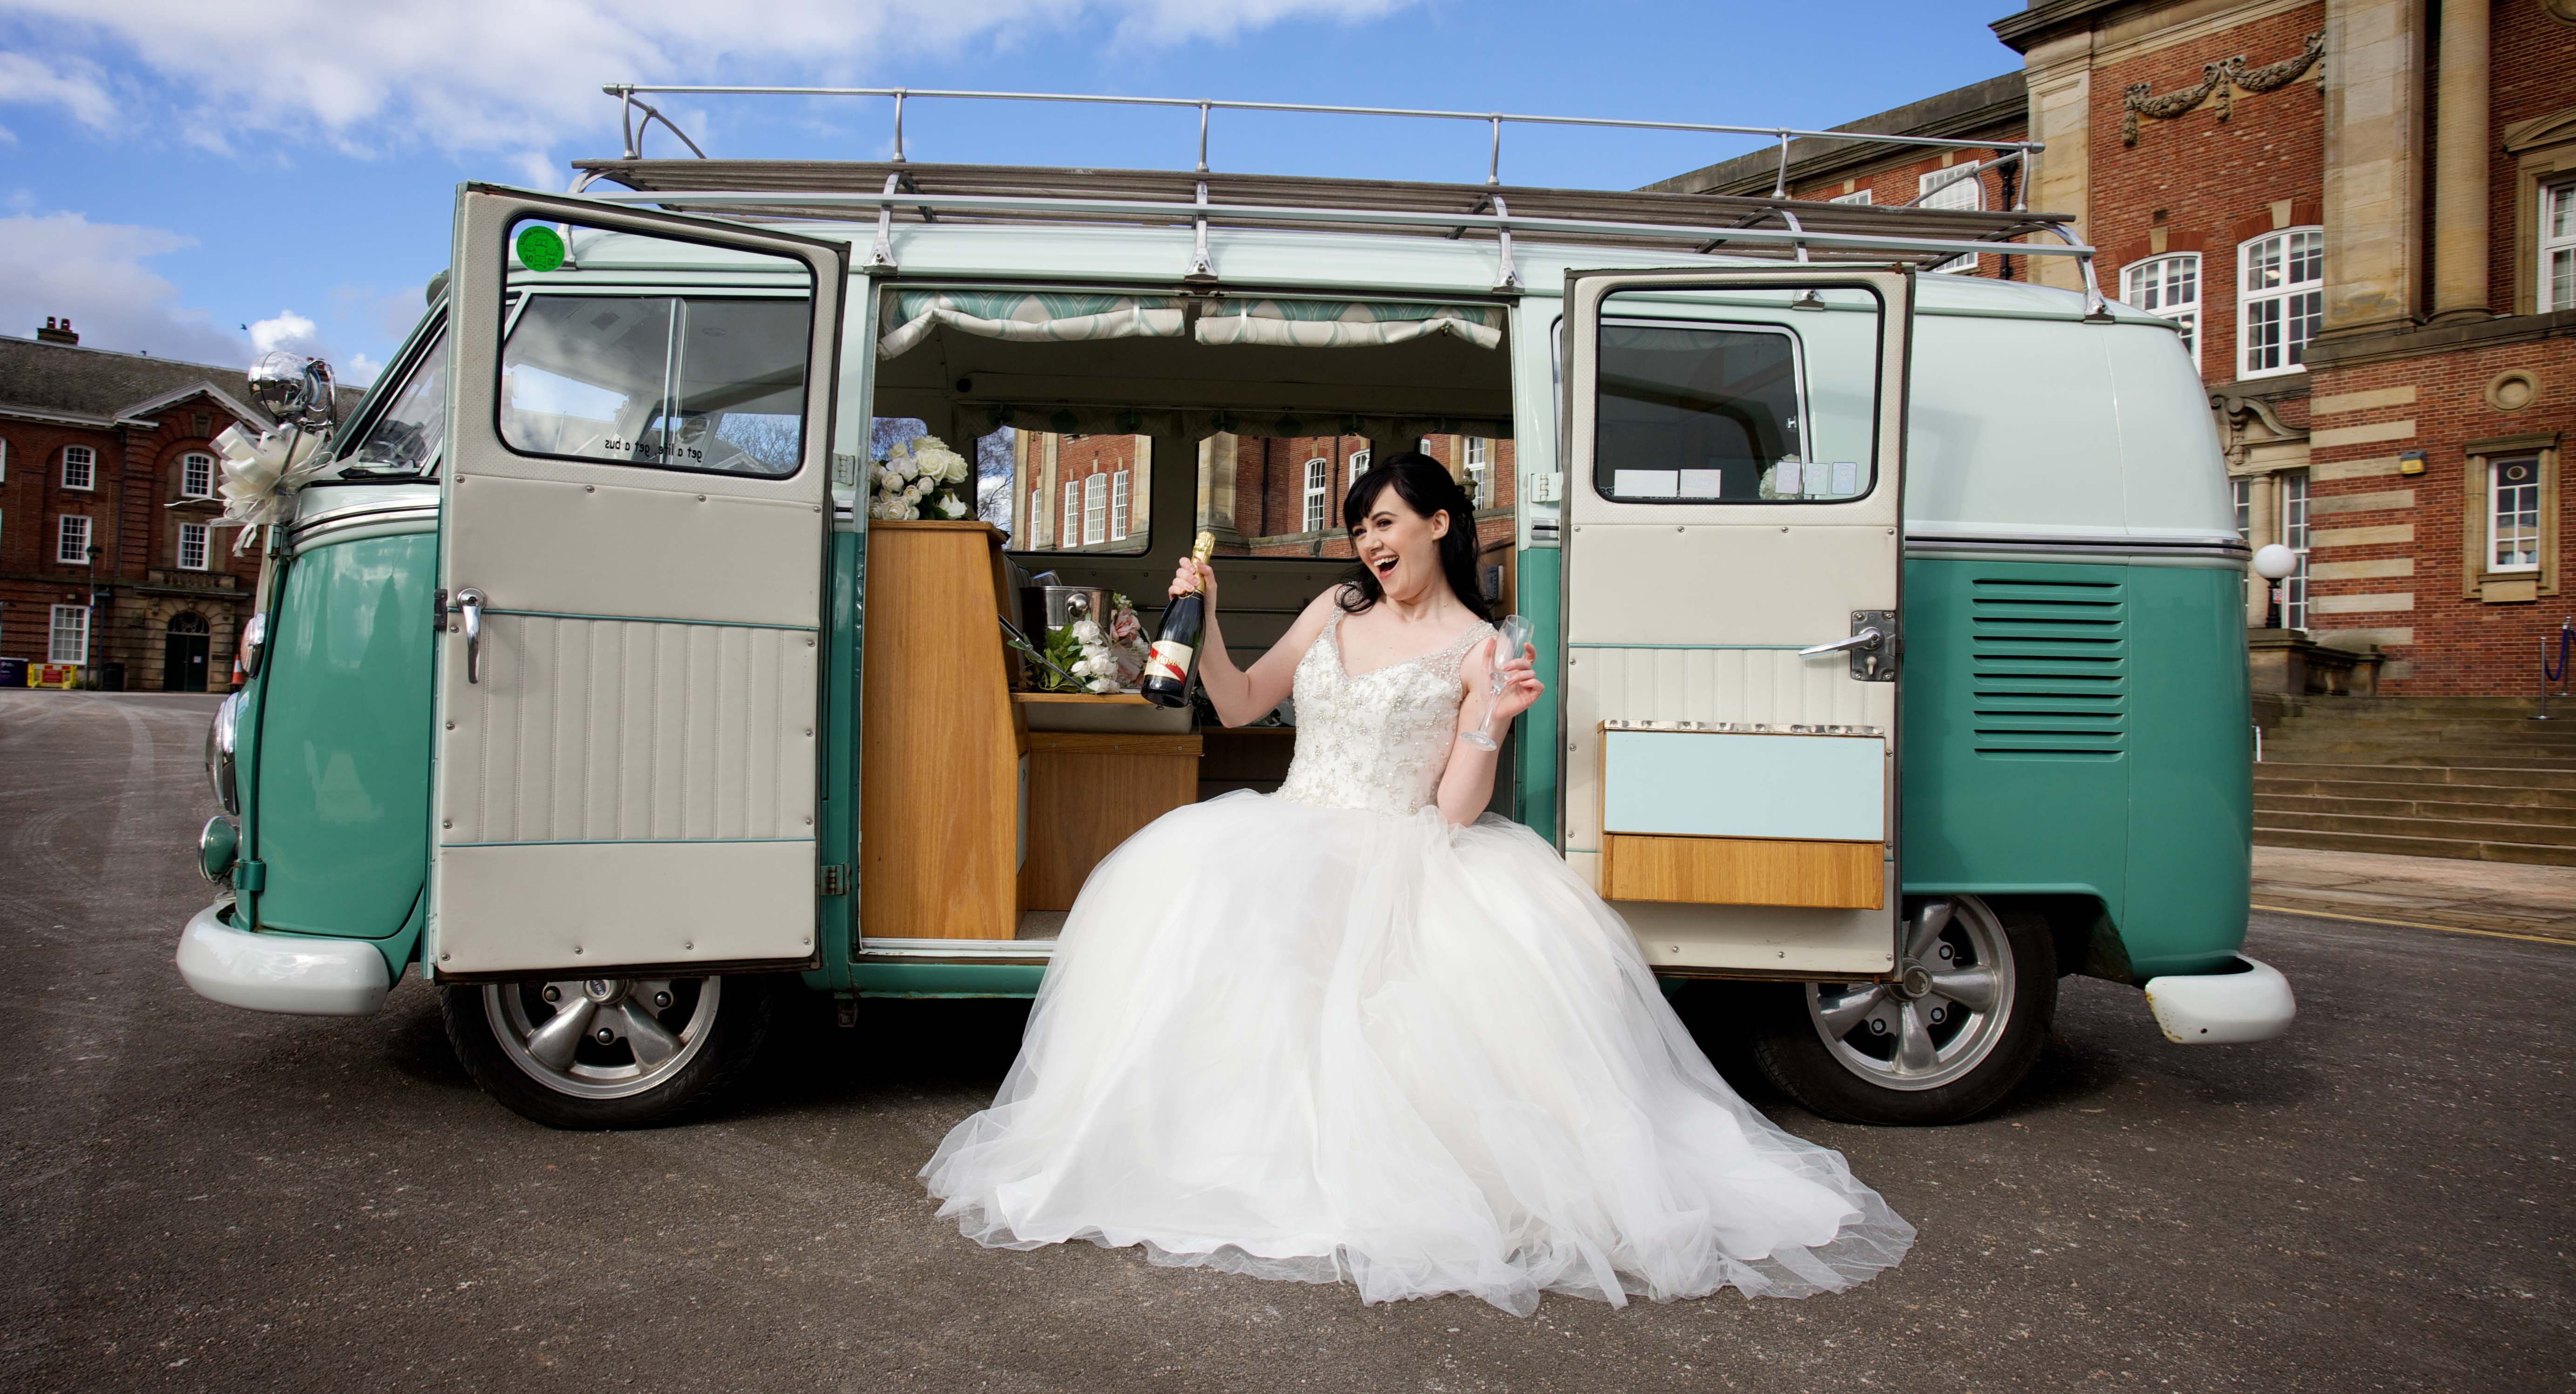 Wedding Fair Bride on VW Camper